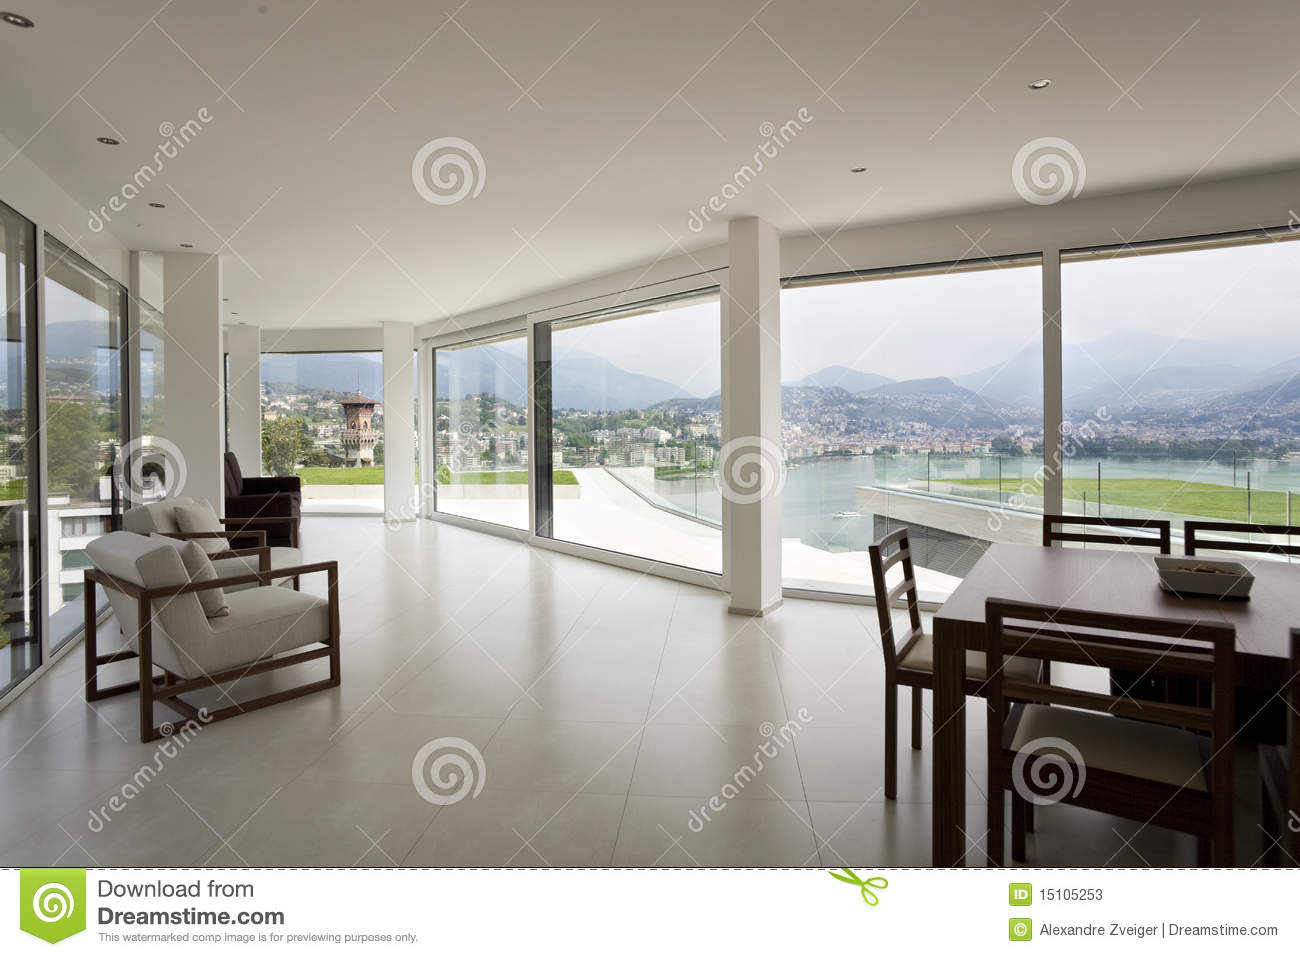 Bel int rieur d 39 une maison moderne photos stock image for Maison d interieur